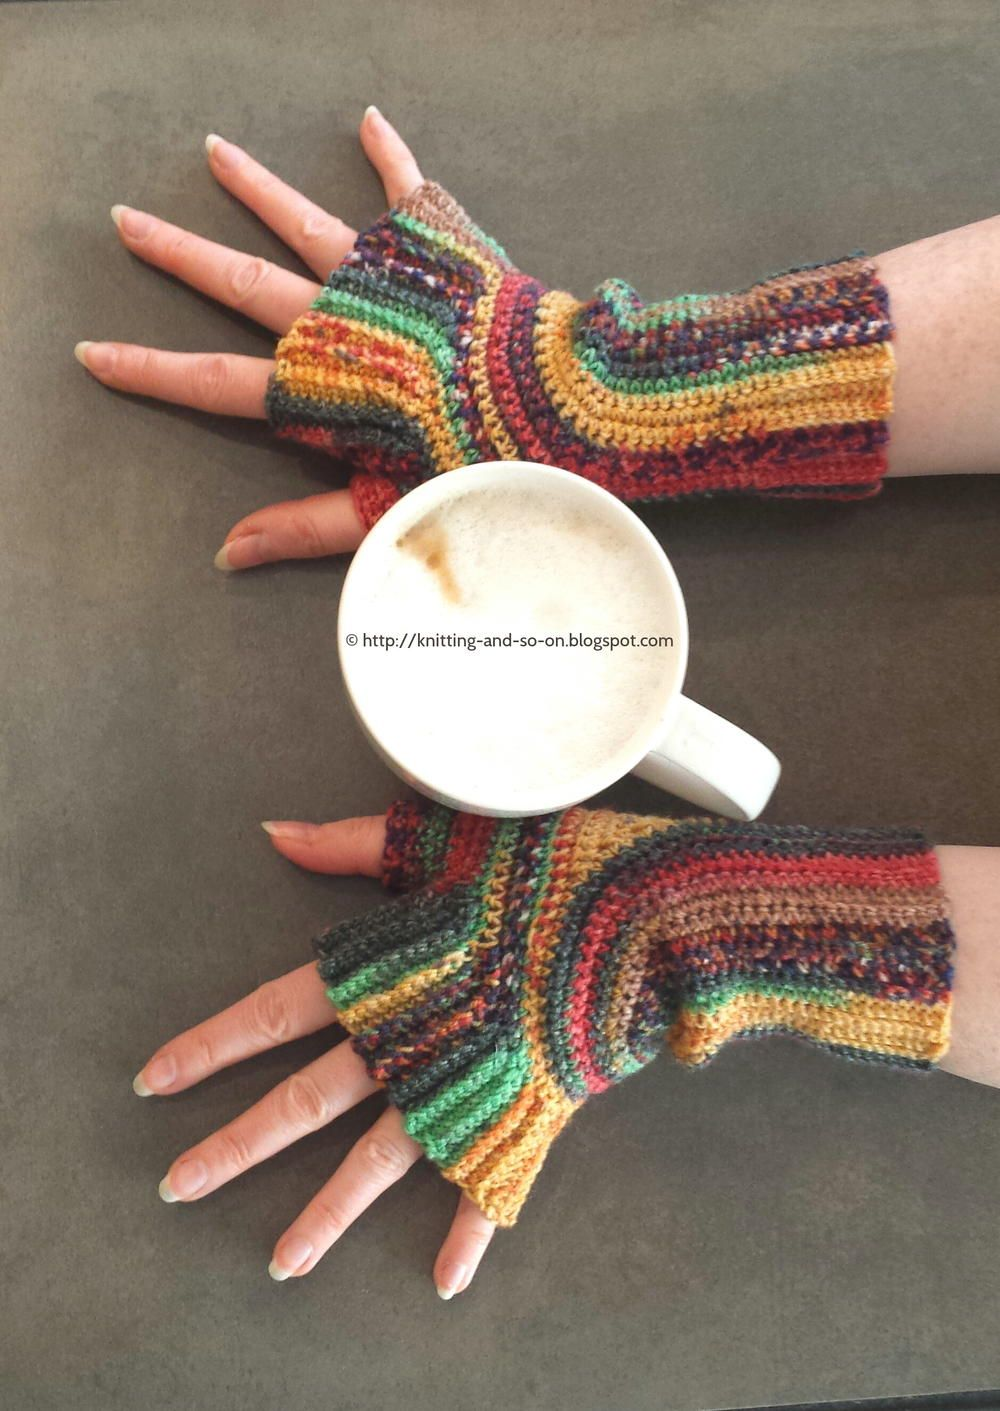 Artistic dreams crocheted mitts crochet free crochet and yarns artistic dreams crocheted mitts bankloansurffo Choice Image